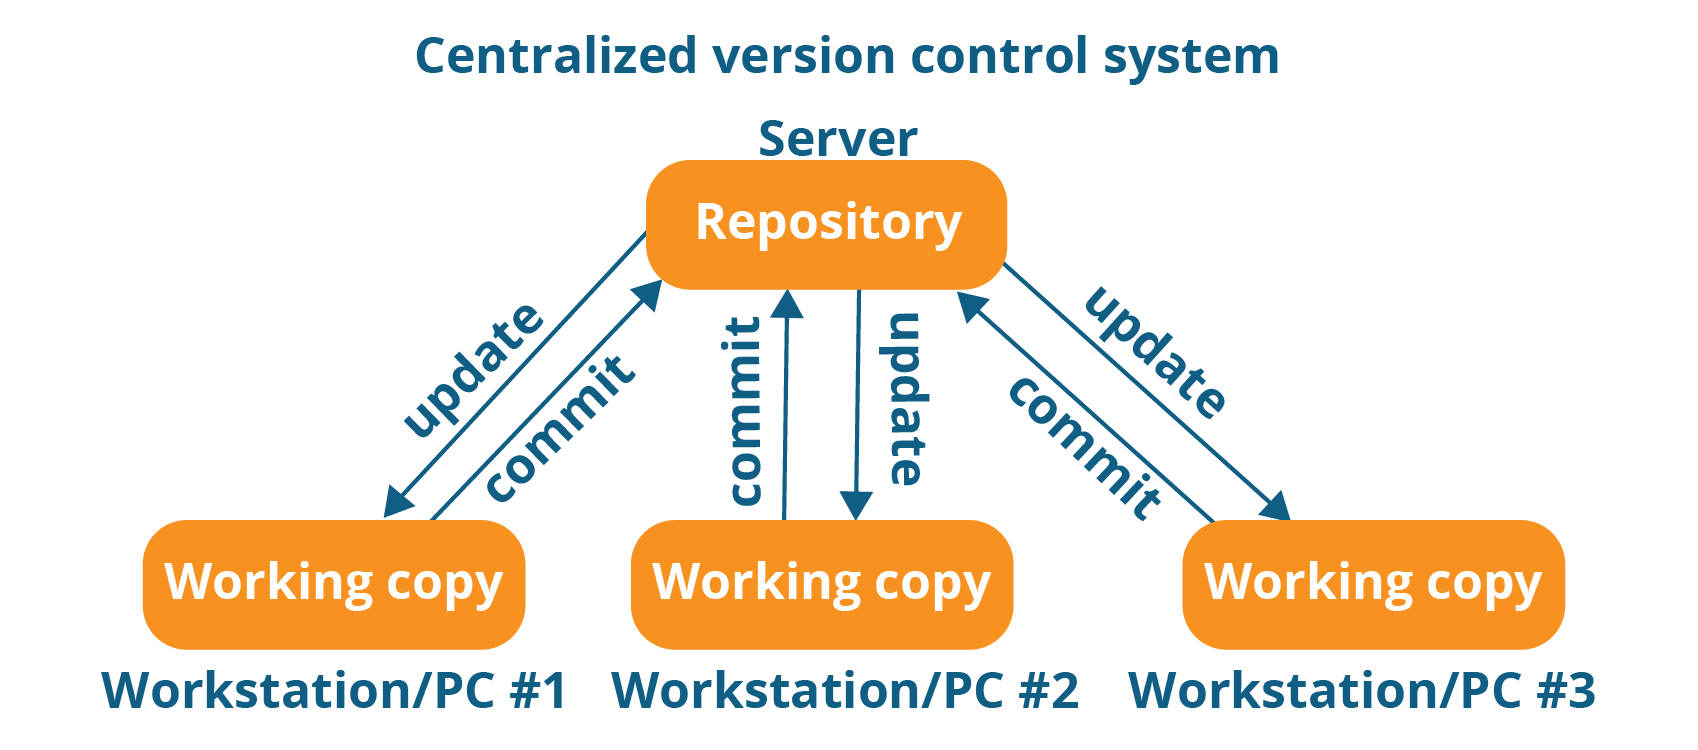 centralized local version control system